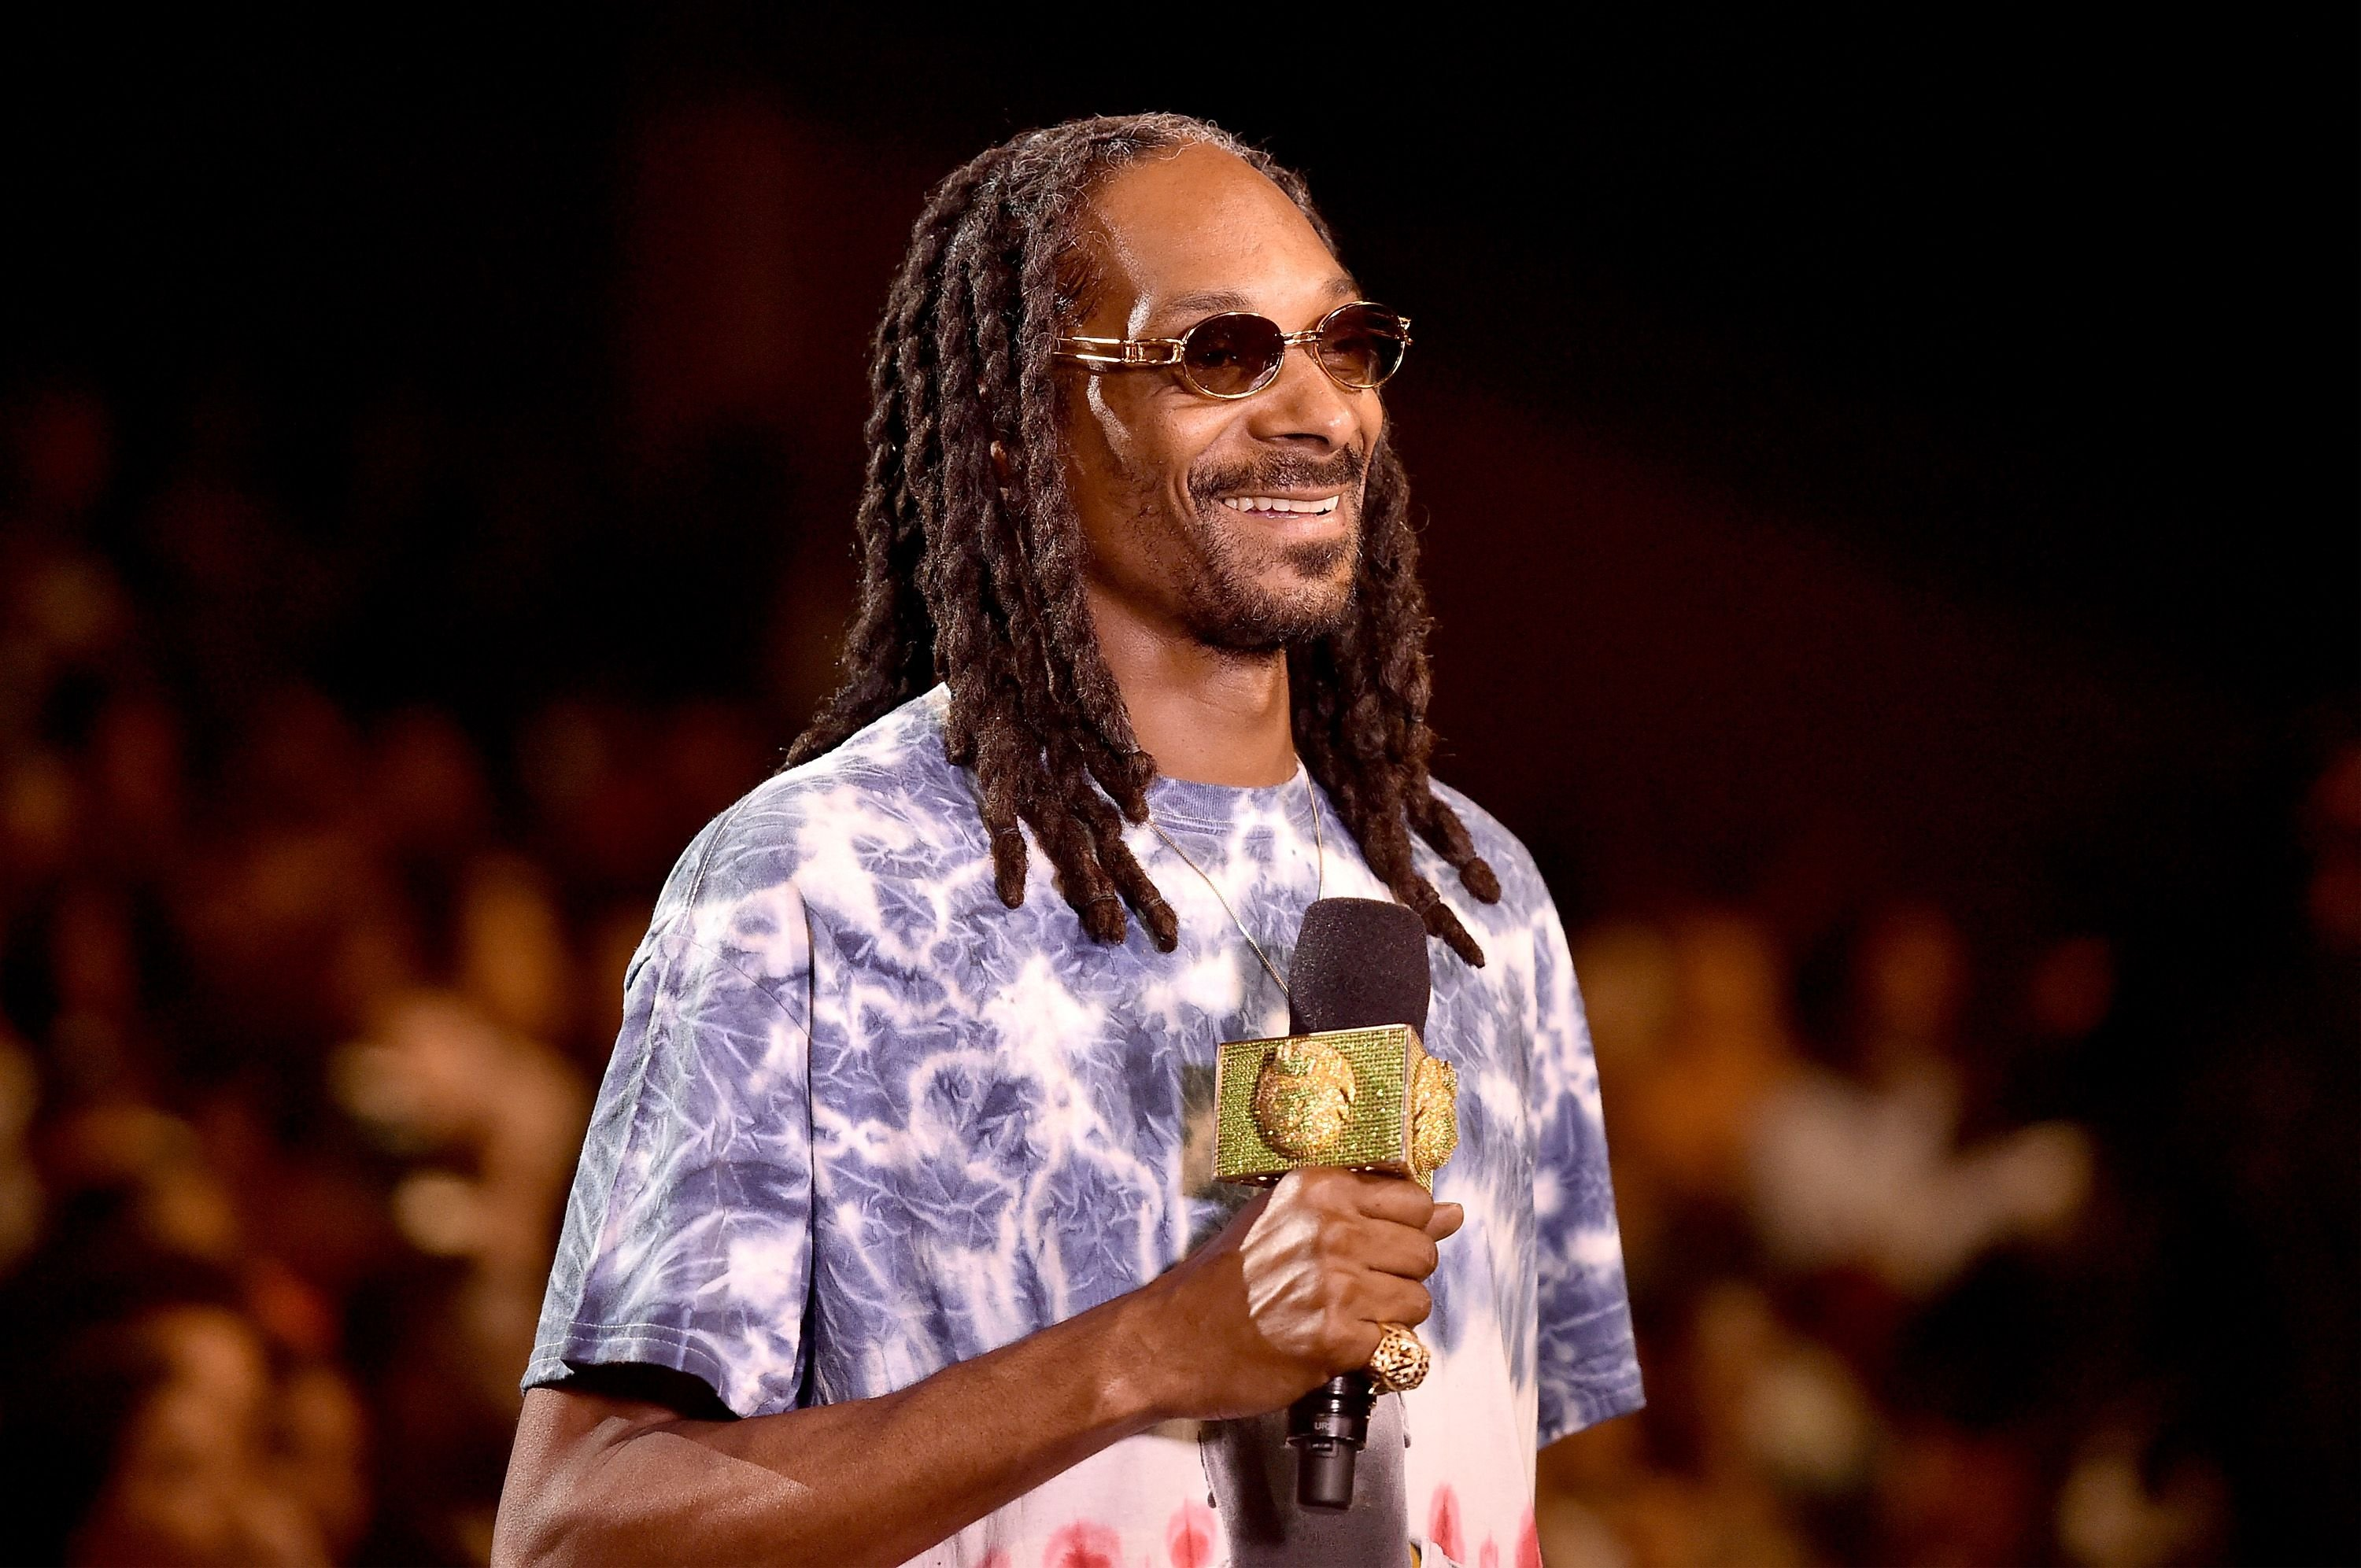 Iconic rapper Snoop Dogg attends the 2015 BET Hip Hop Awards at the Atlanta Civic Center in Atlanta, Georgia. | Photo: Getty Images